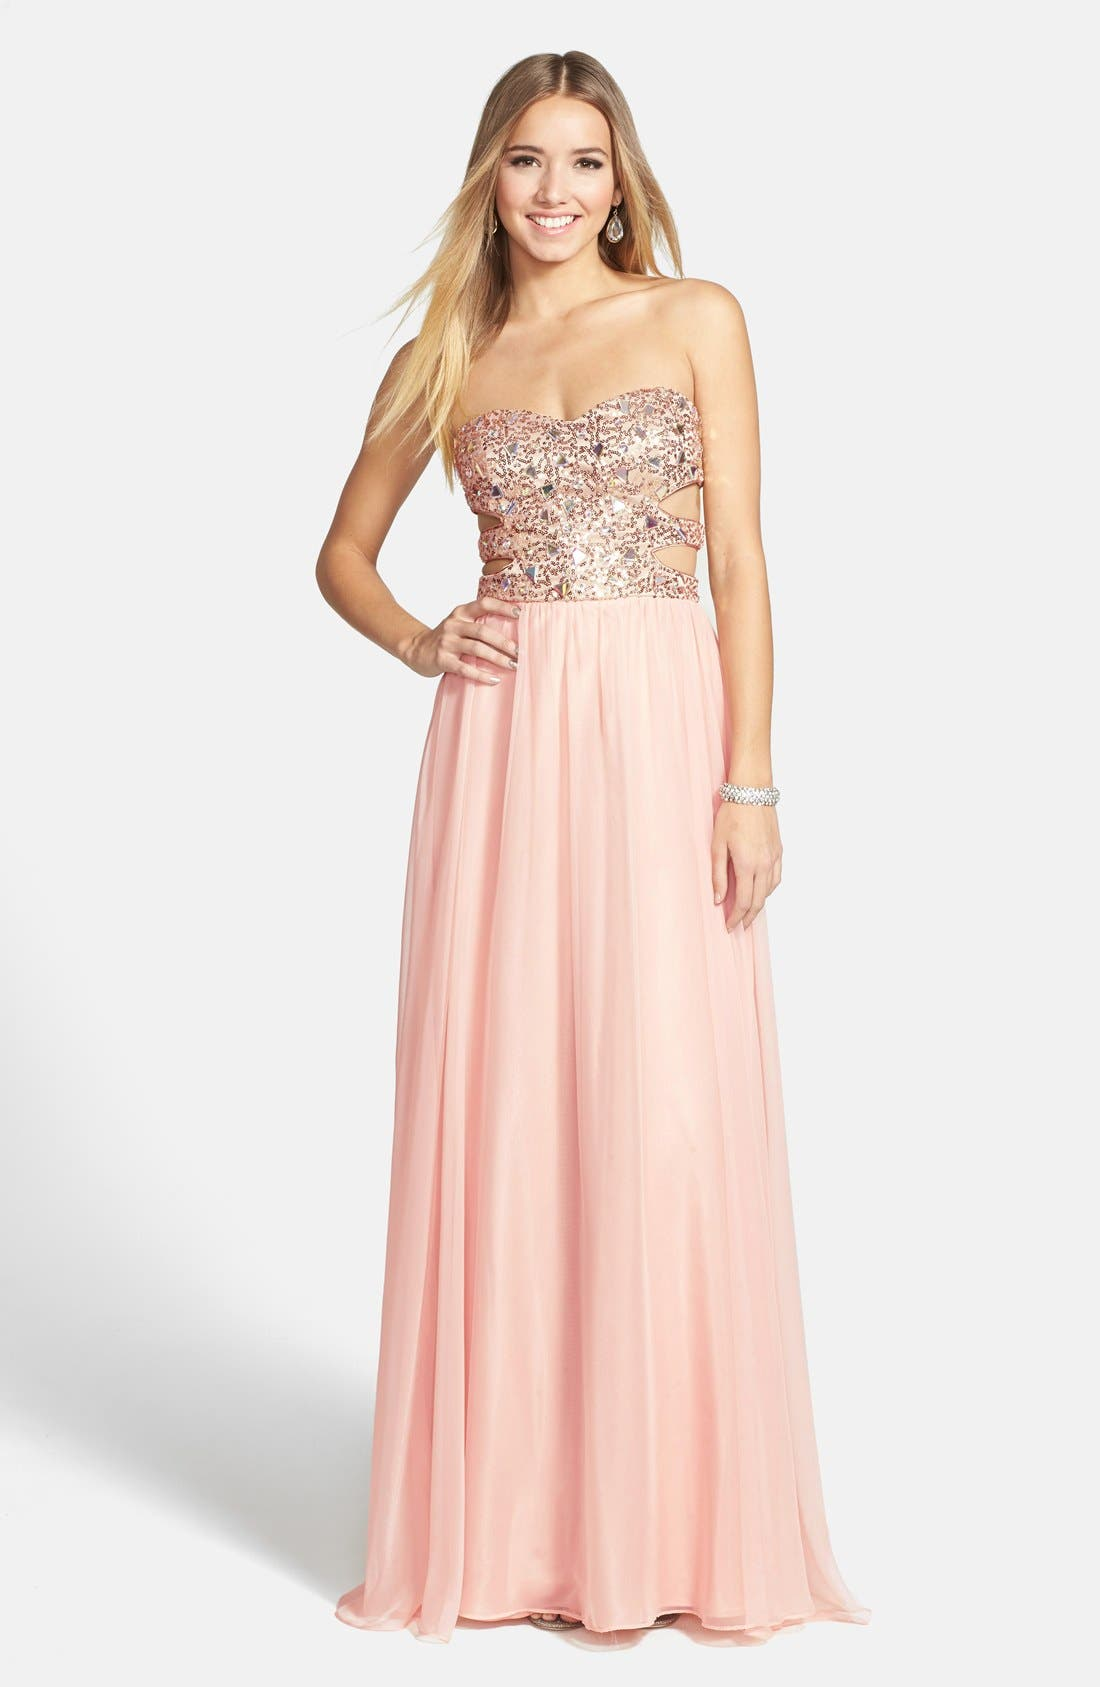 Alternate Image 1 Selected - Morgan & Co. Embellished Cutout Sweetheart Bodice Strapless Gown (Juniors)